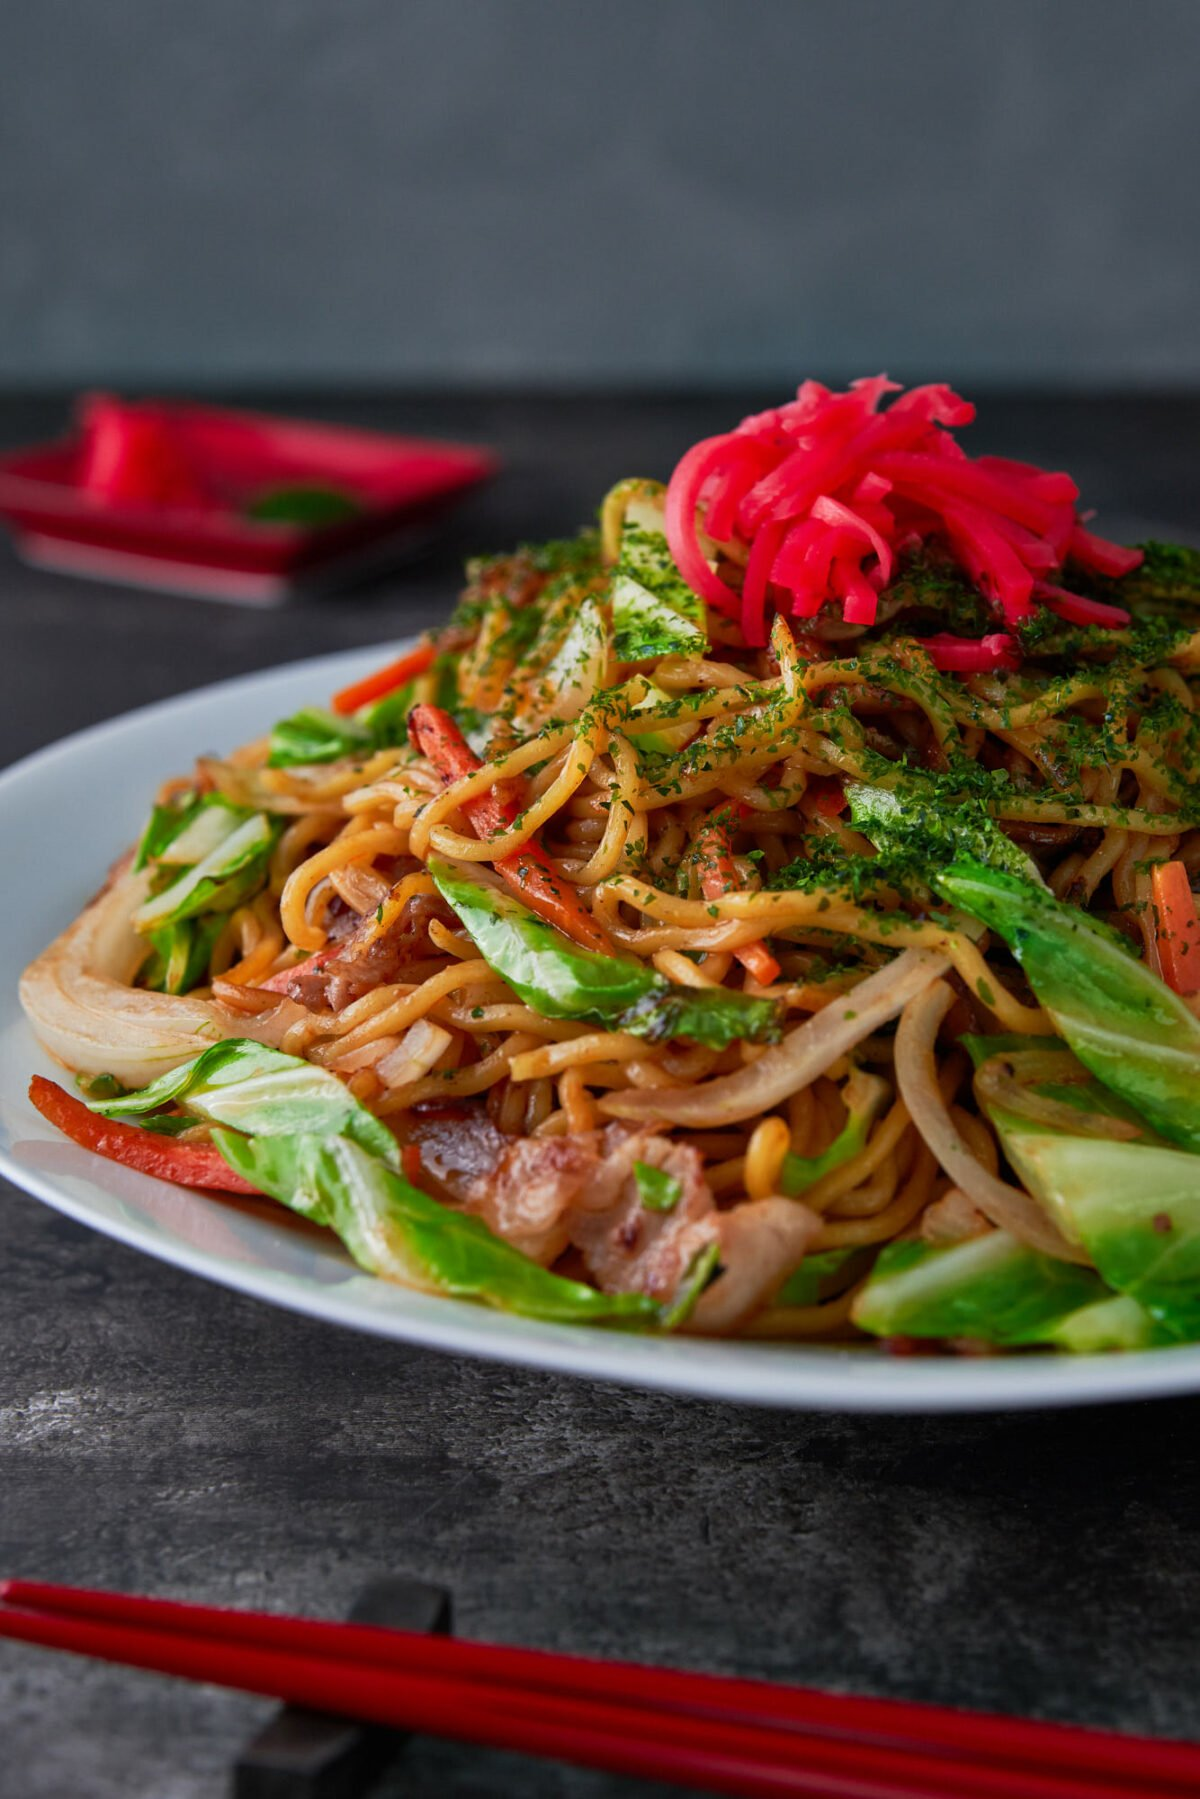 This Yakisoba is an easy Japanese noodle stir-fry that comes together in just 10 mintues from ingredients that are available everywhere.